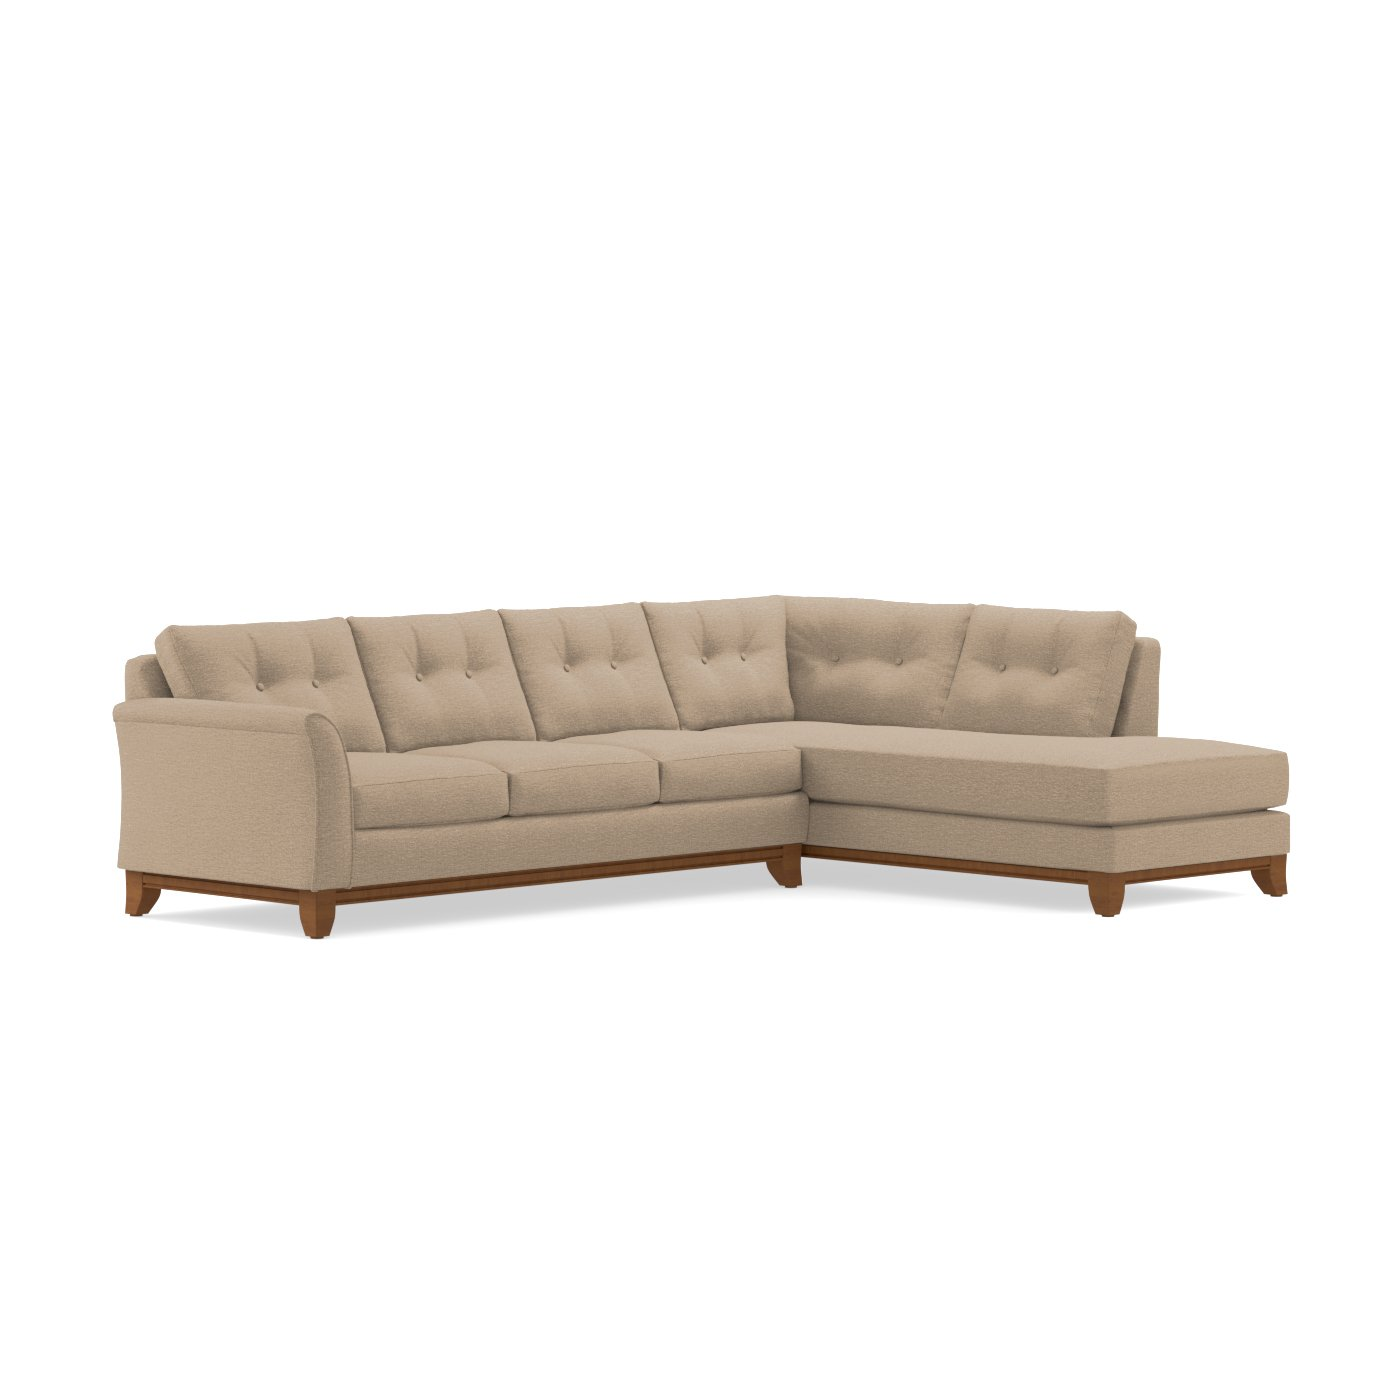 Marco 2pc Sectional Sofa  sc 1 st  Apt2B : beige sectional couch - Sectionals, Sofas & Couches